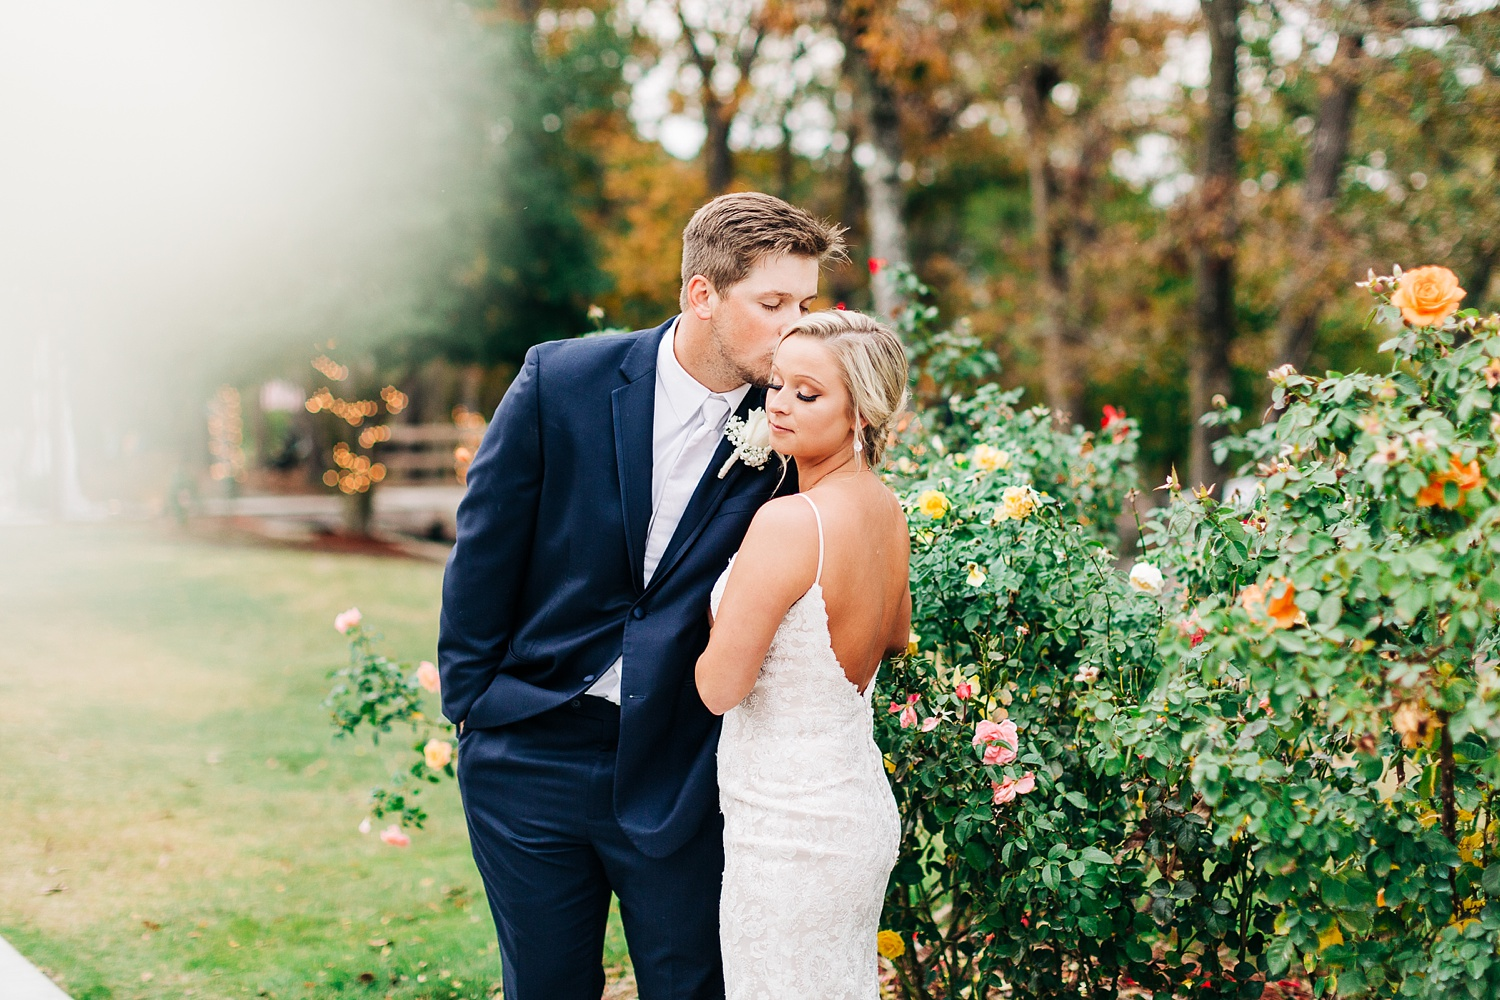 groom kisses bride on top of her head in a rose garden